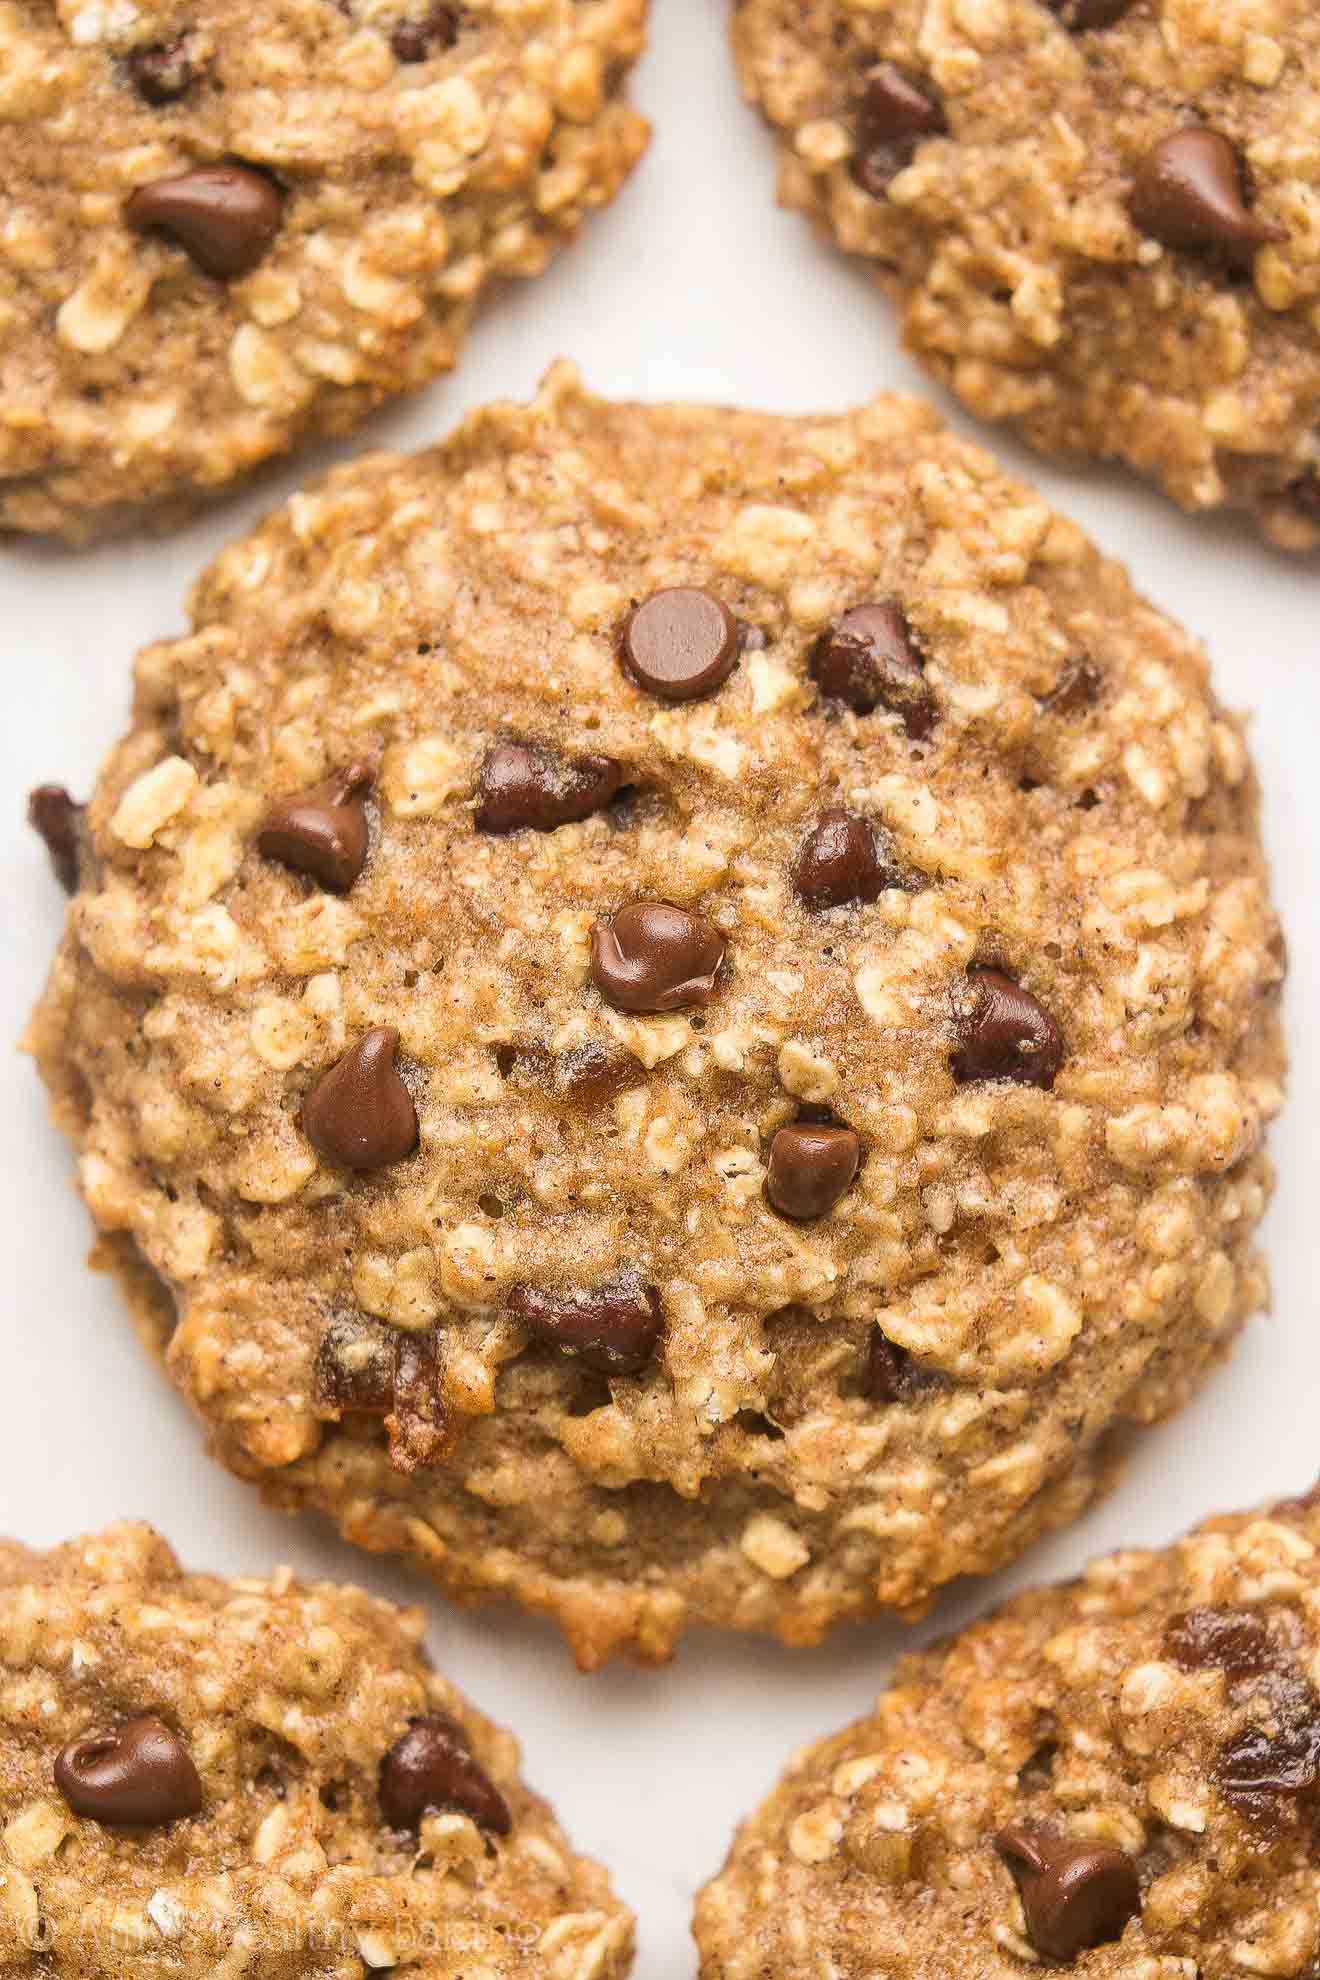 Choc Chip Oatmeal Cookies Healthy  Healthy Caramel Chocolate Chip Oatmeal Cookies